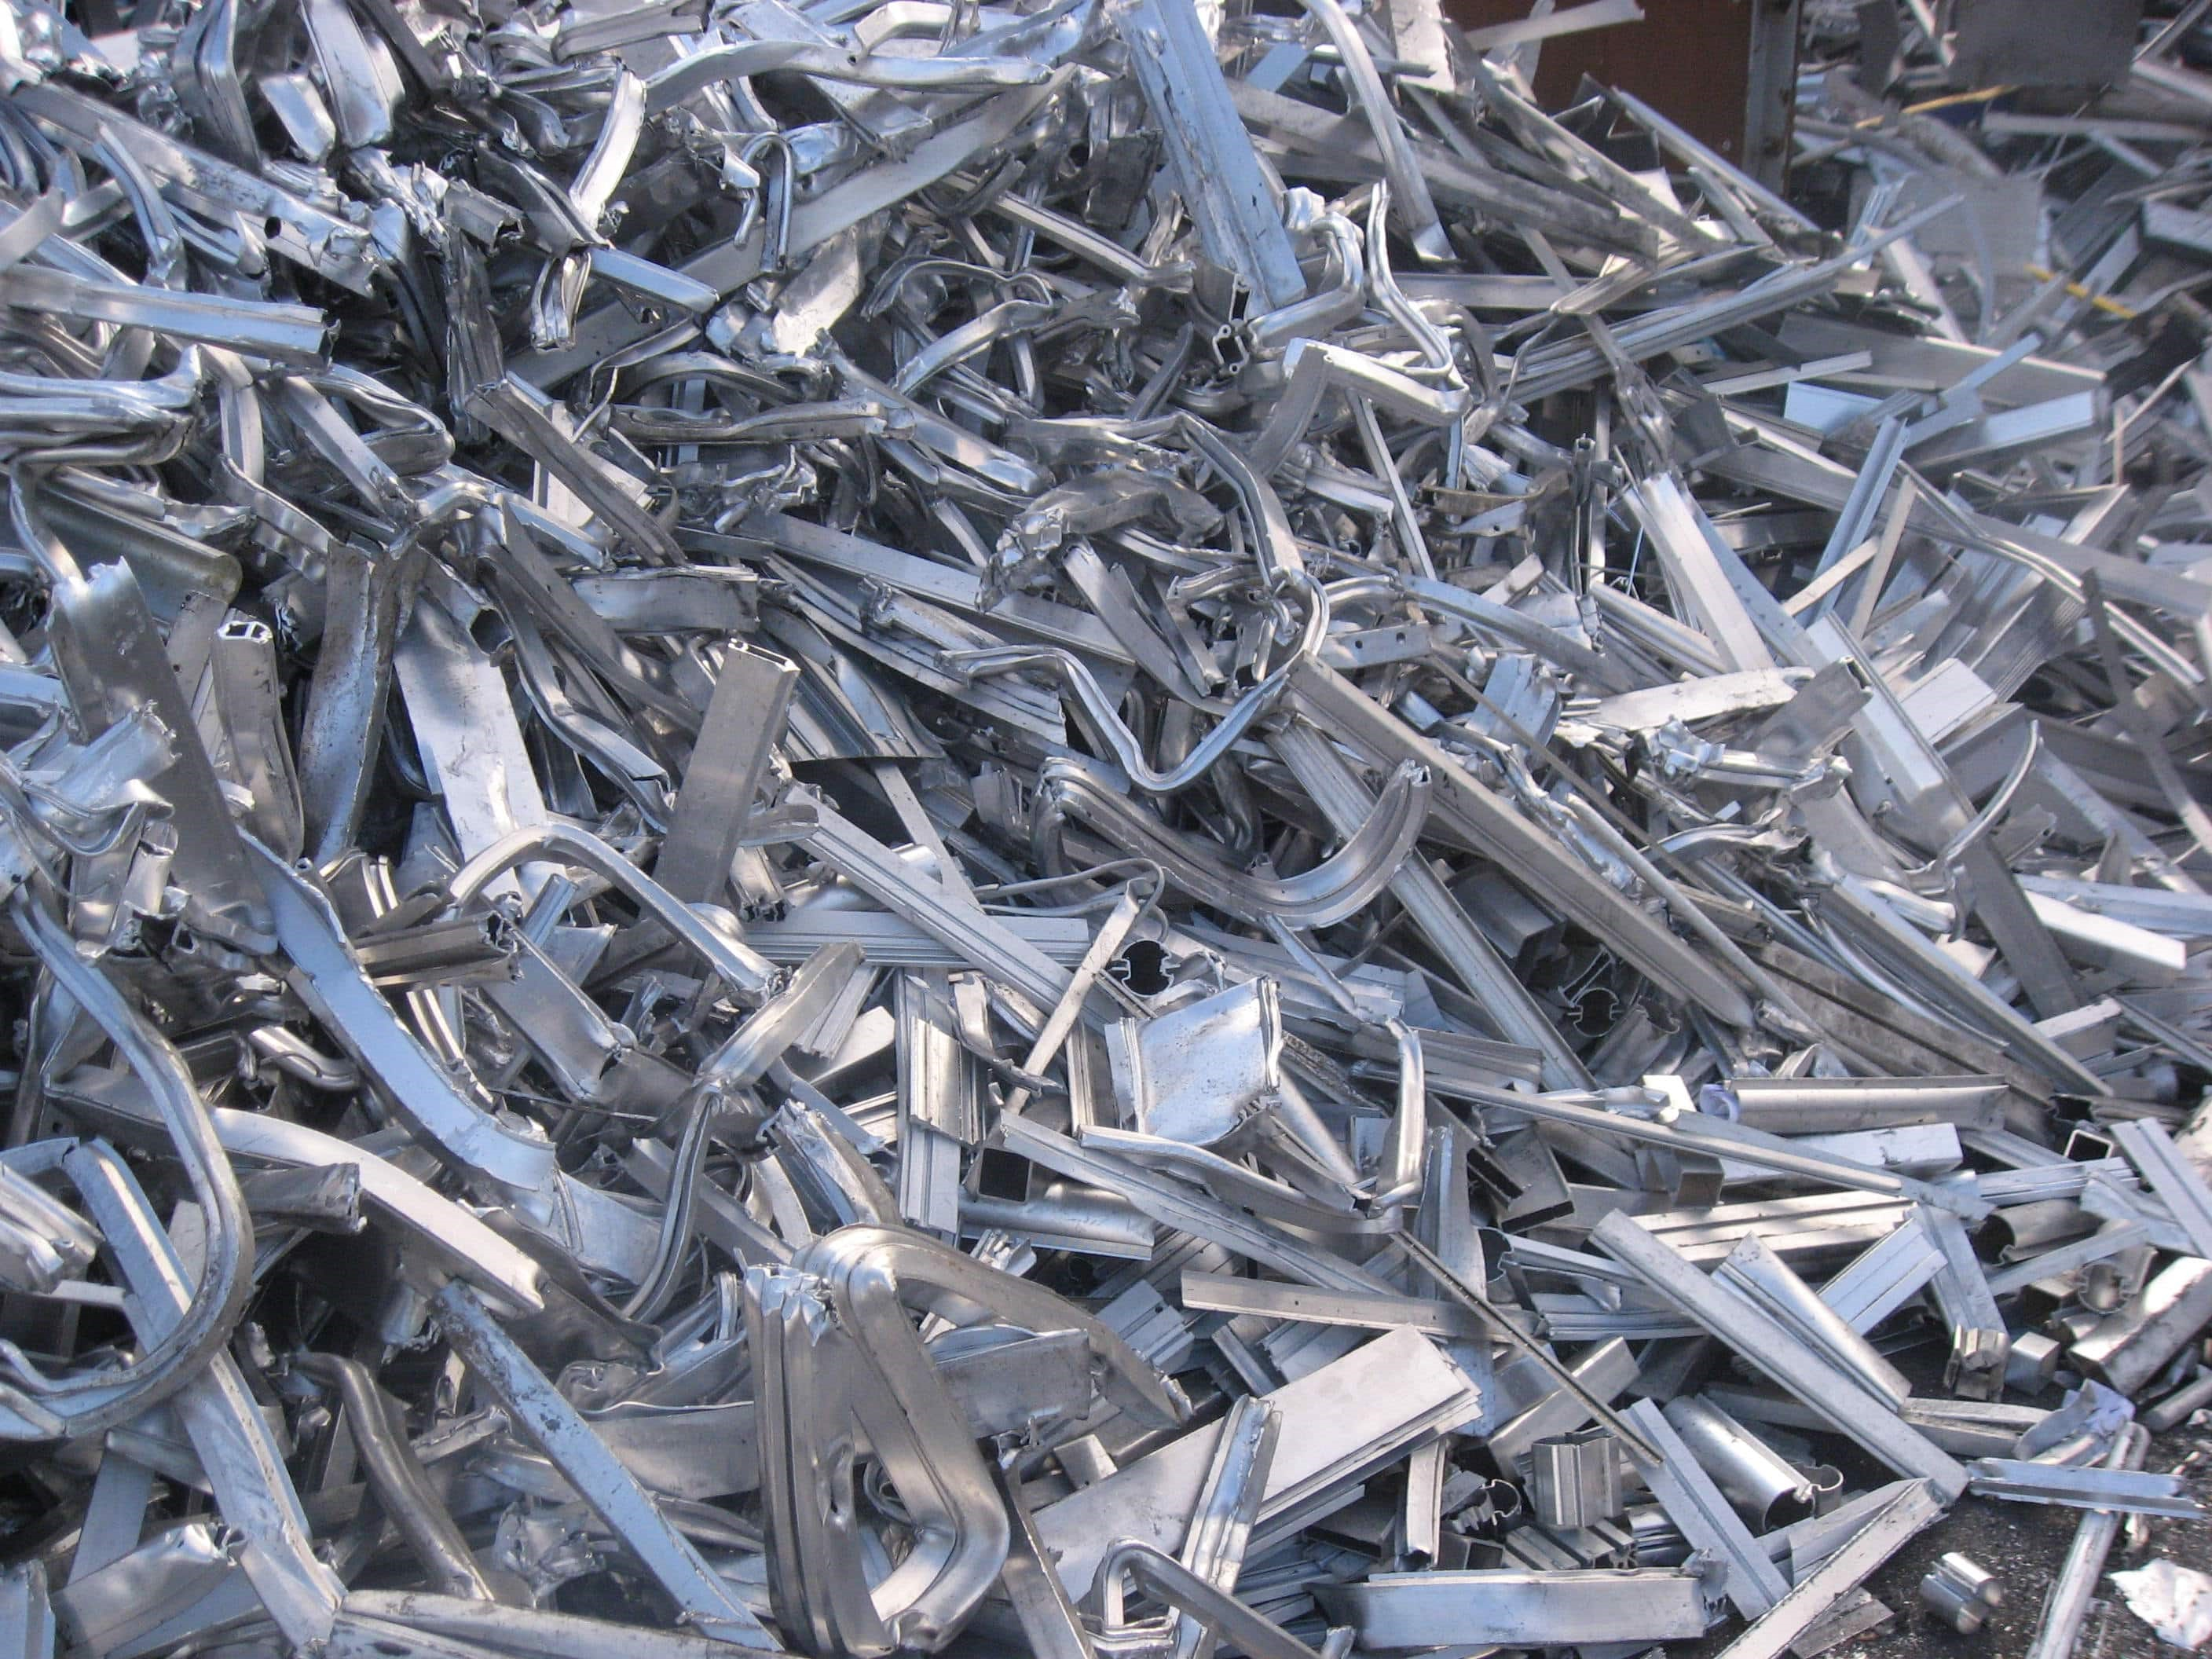 Uncertainties over China's scrap import rules taking toll on